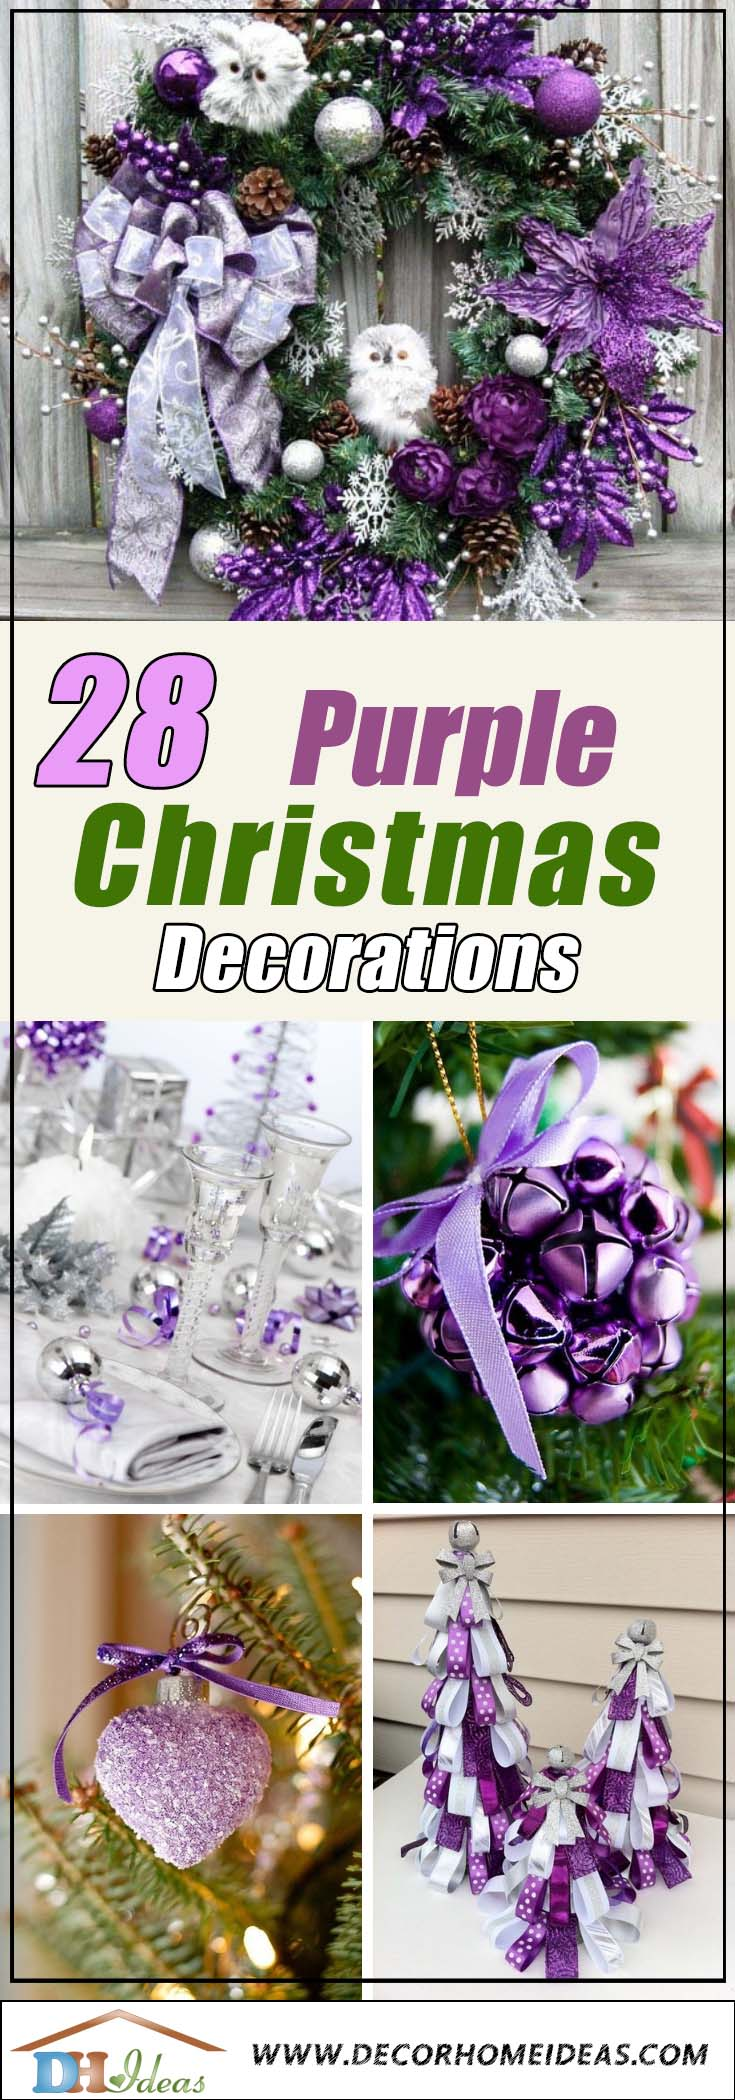 Best Purple Christmas Decorations #Christmasdecor #purple #Christmas #decorhomeideas